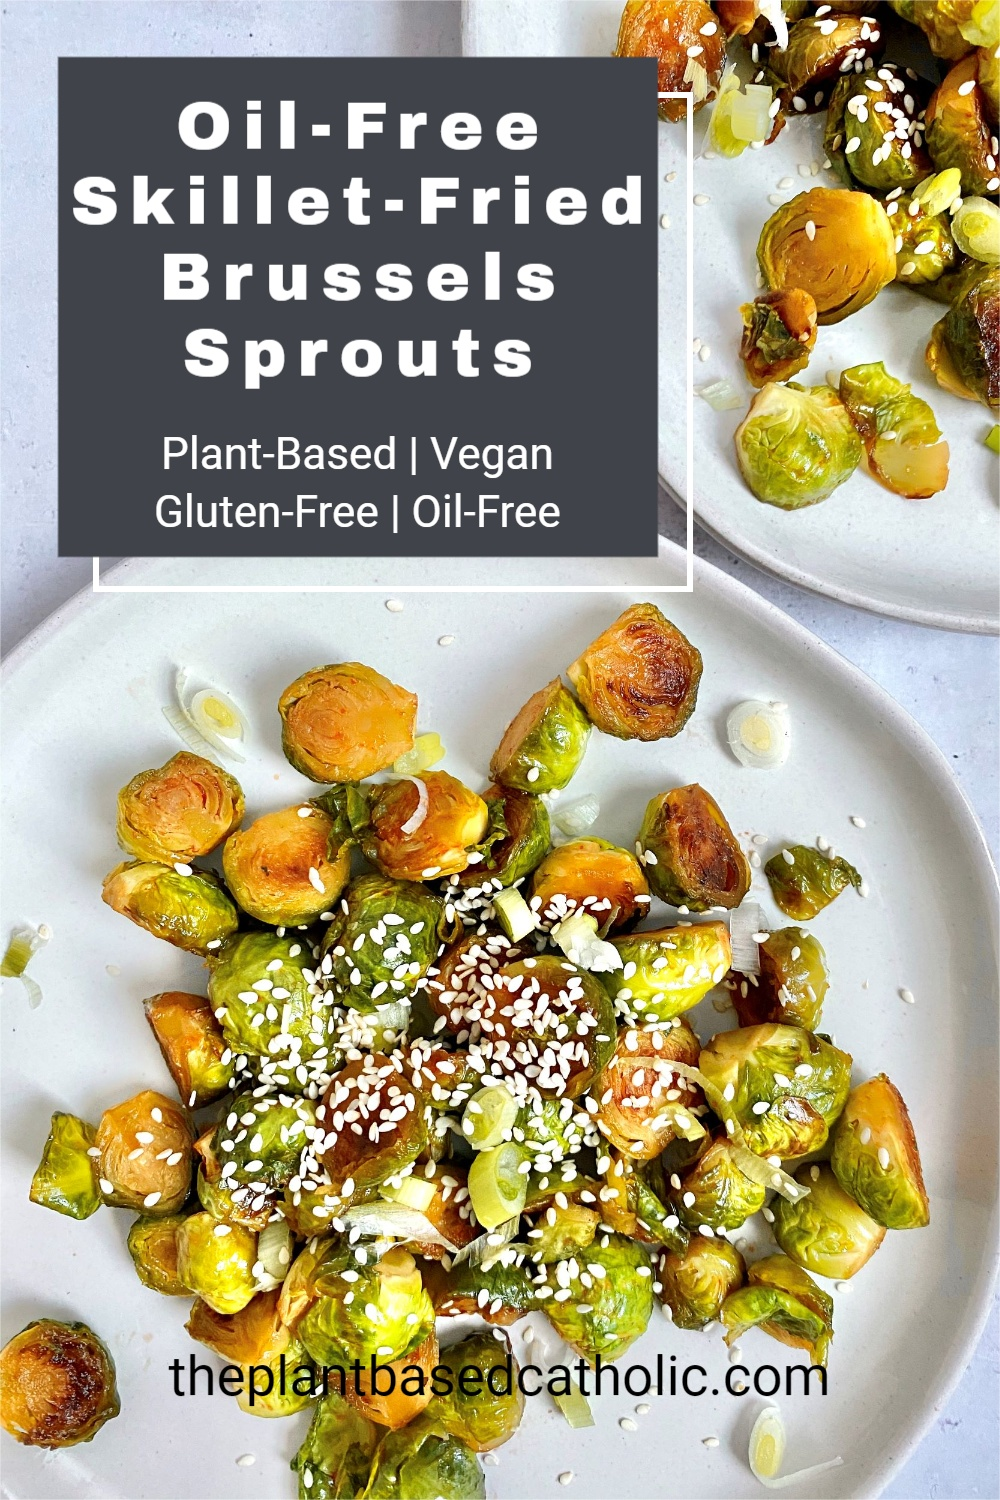 Oil-Free Skillet-Fried Brussels Sprouts Pinterest Graphic